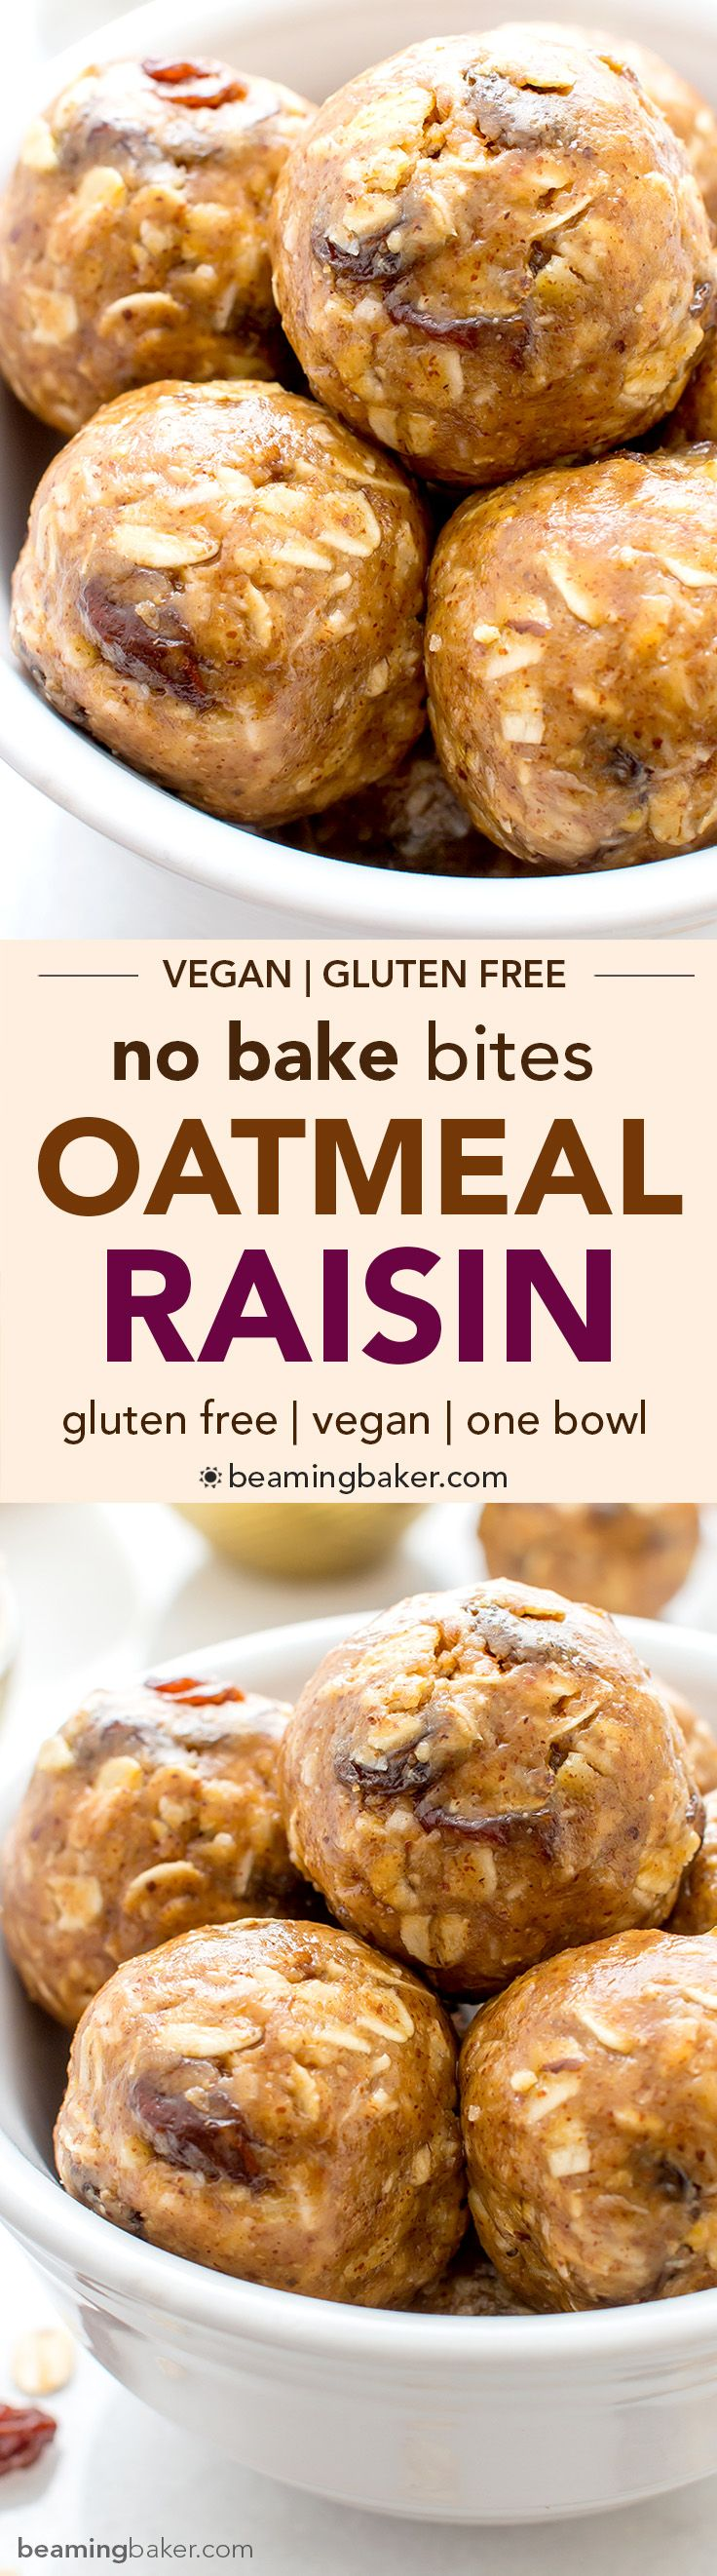 No Bake Oatmeal Raisin Bites (V+GF): A super easy, one bowl recipe for healthy energy bites bursting with oatmeal raisin cookie flavor. #Vegan #GlutenFree | BeamingBaker.com